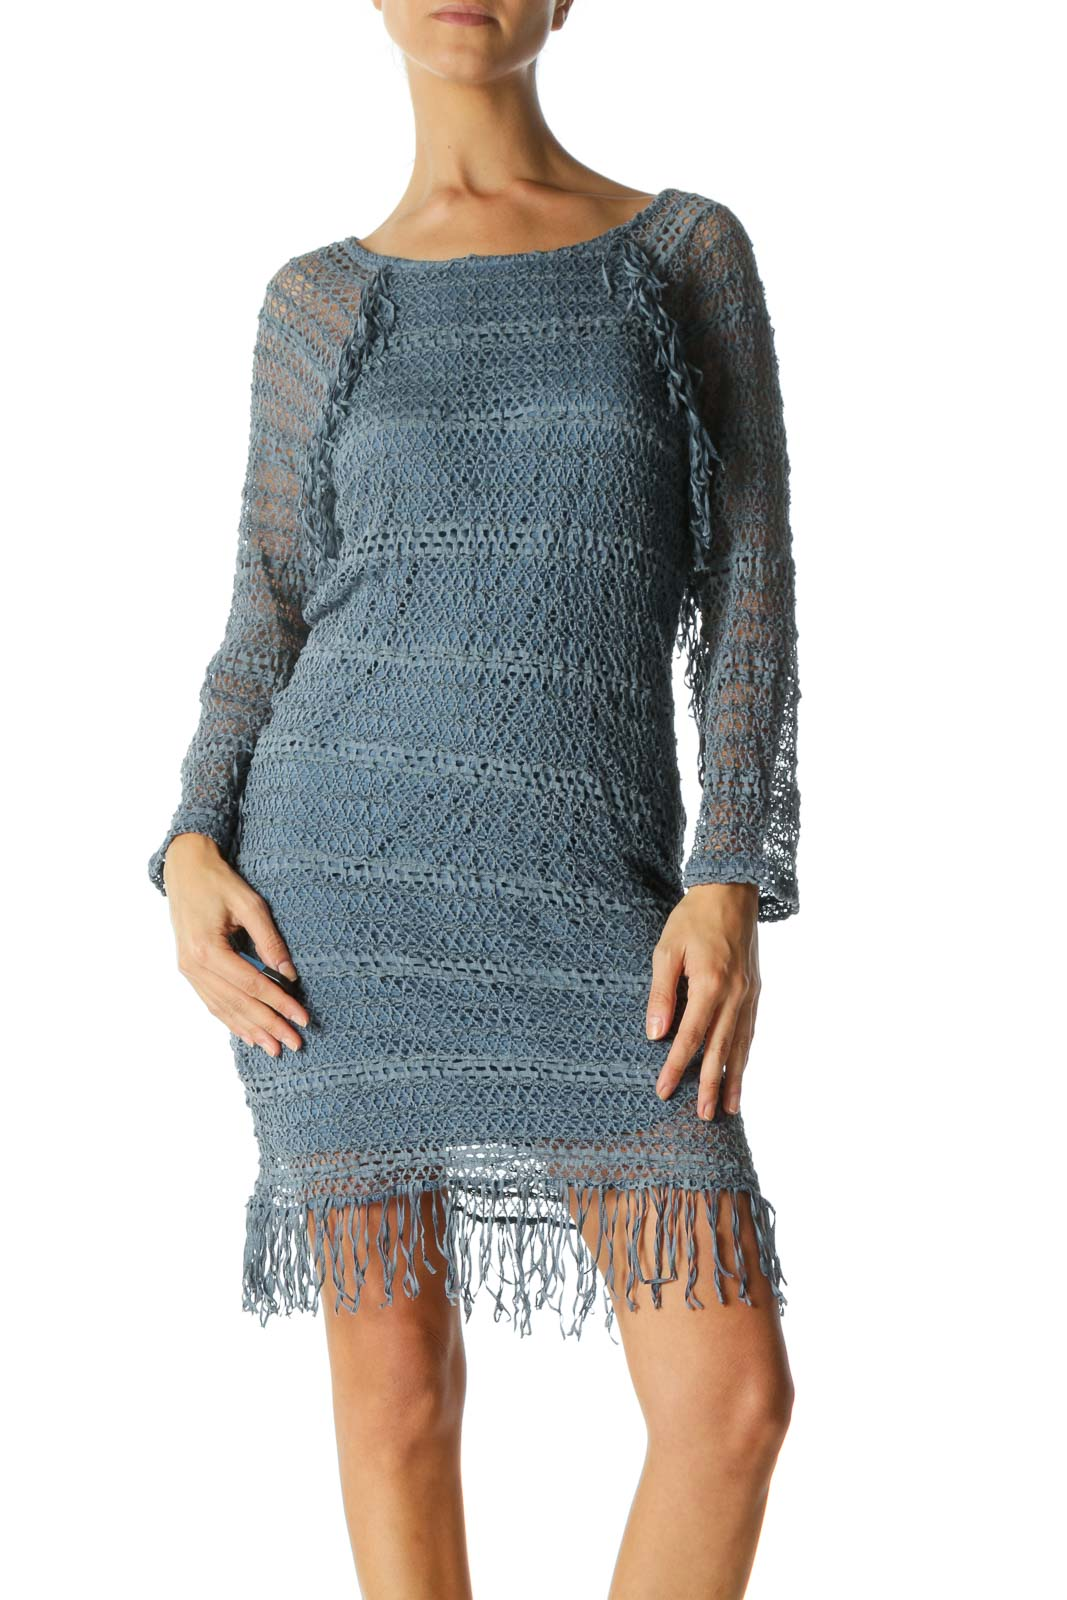 Blue Round Neck Stretch Knit Fringe Detail Dress Front